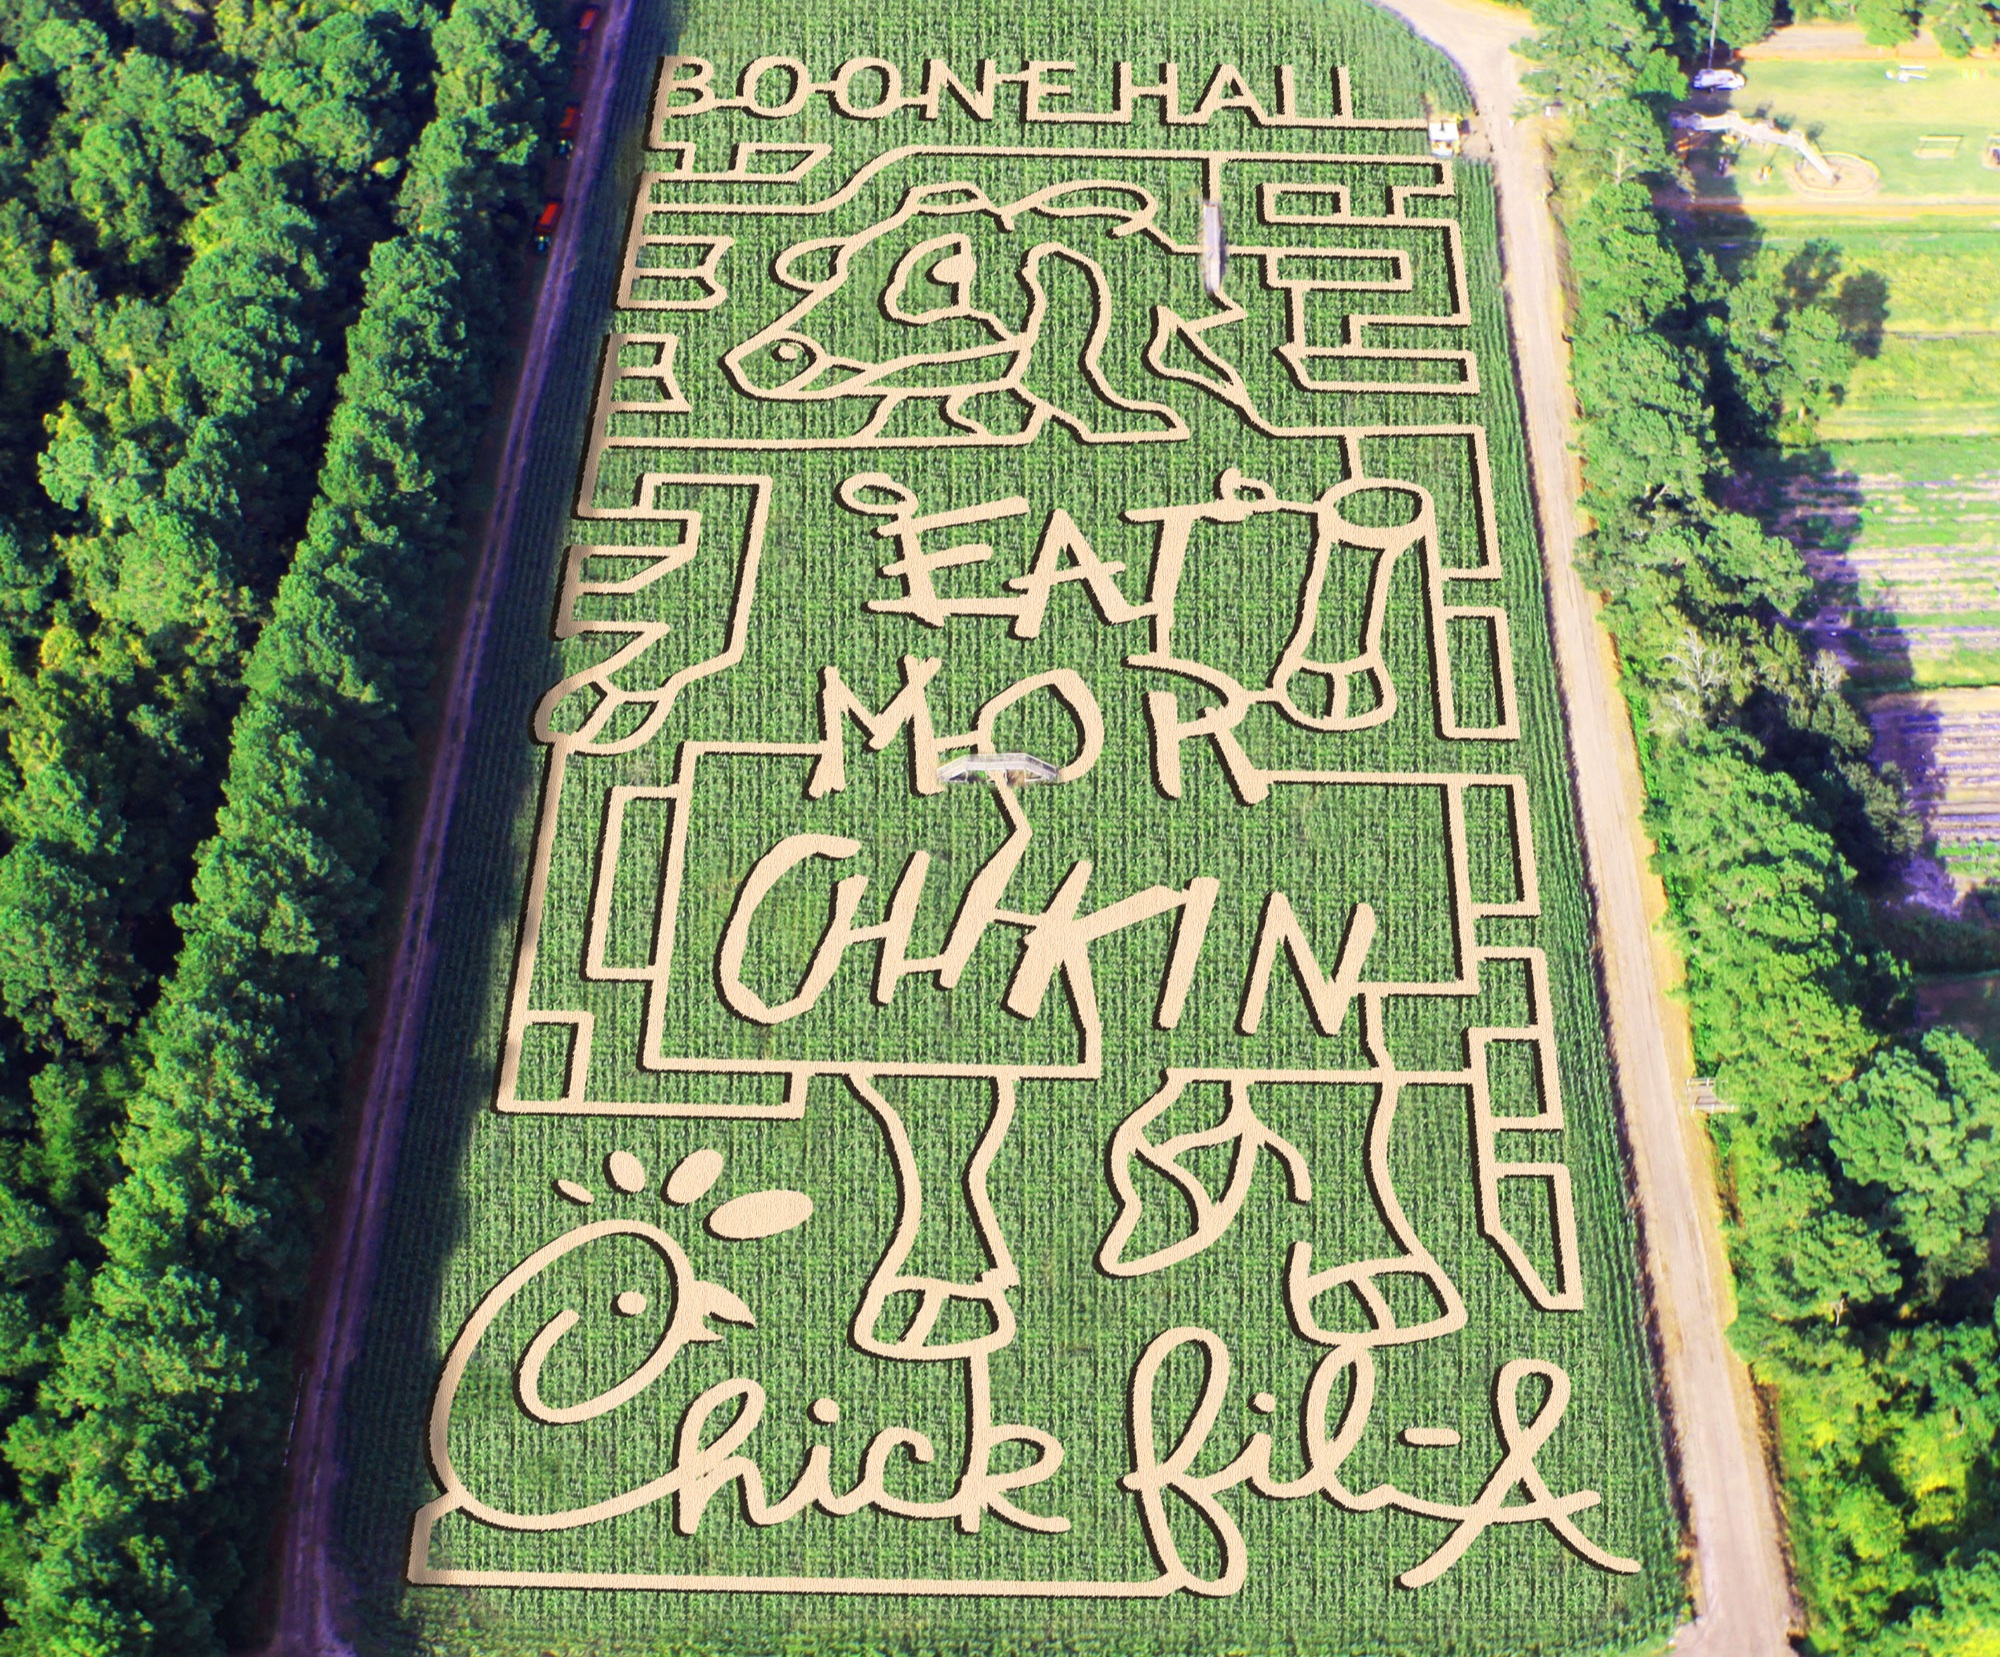 Boone Hall Pumpkin Patch - What: The perfect Halloween destination for families! A HUGE pumpkin patch, corn maze, petting zoo, and more for $12.Details: 2434 US 17, Mt. Pleasant, SC 29464